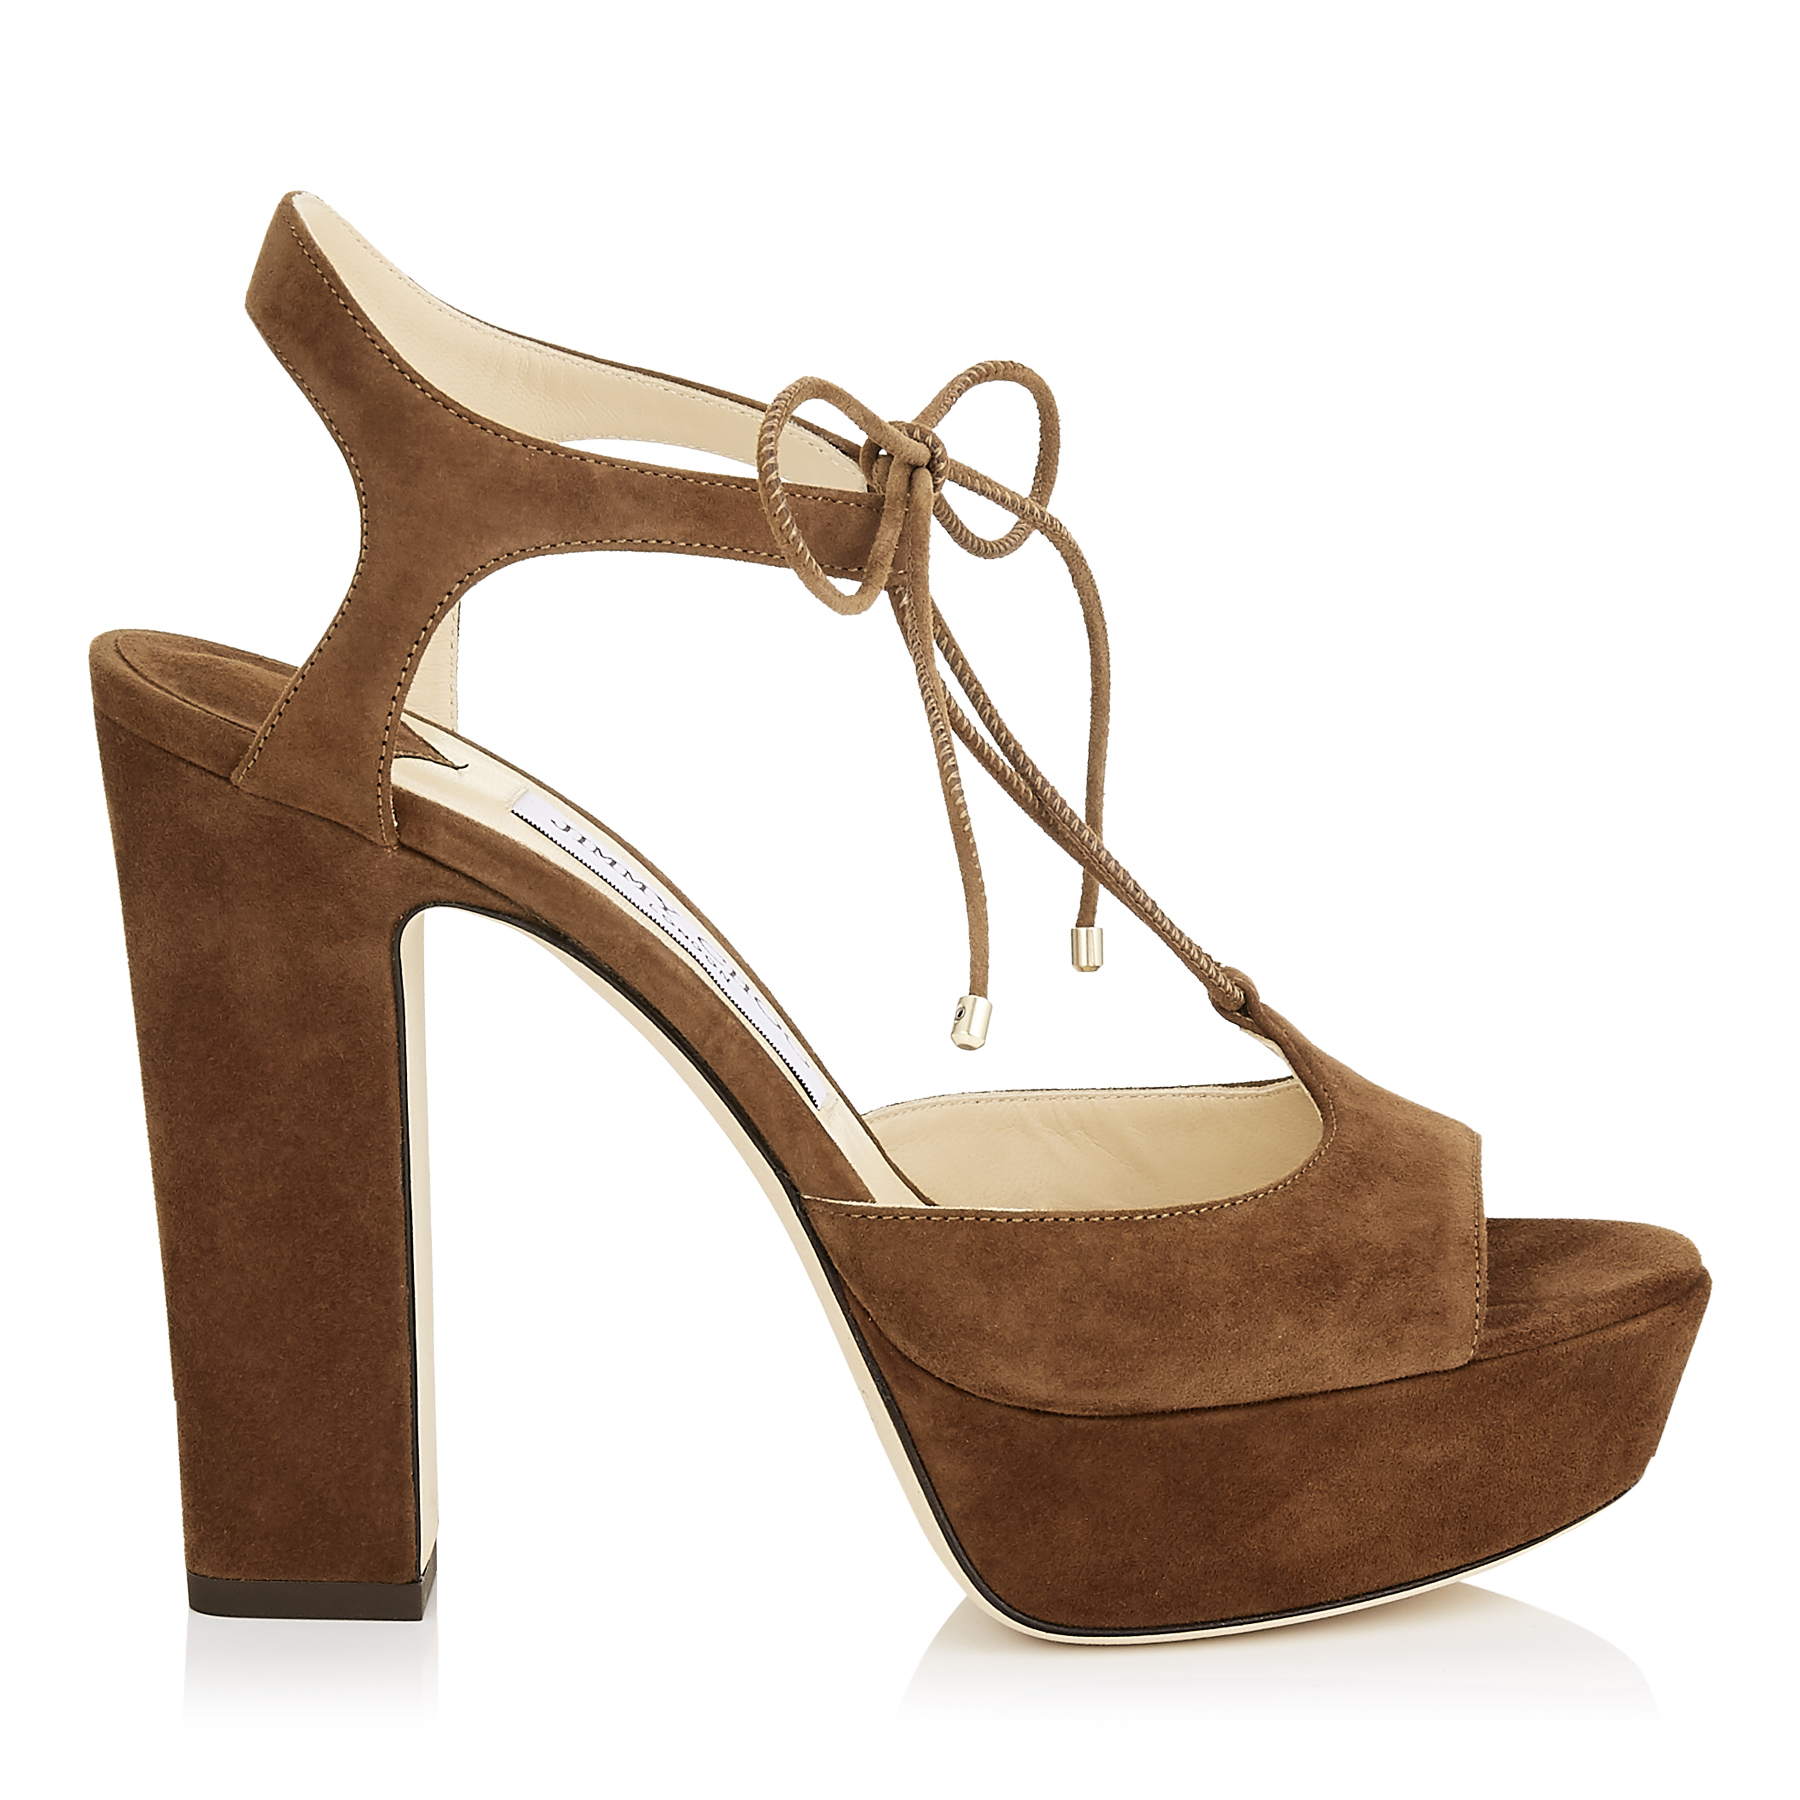 BELIZE 120 Cacao Suede Platform Sandals by Jimmy Choo